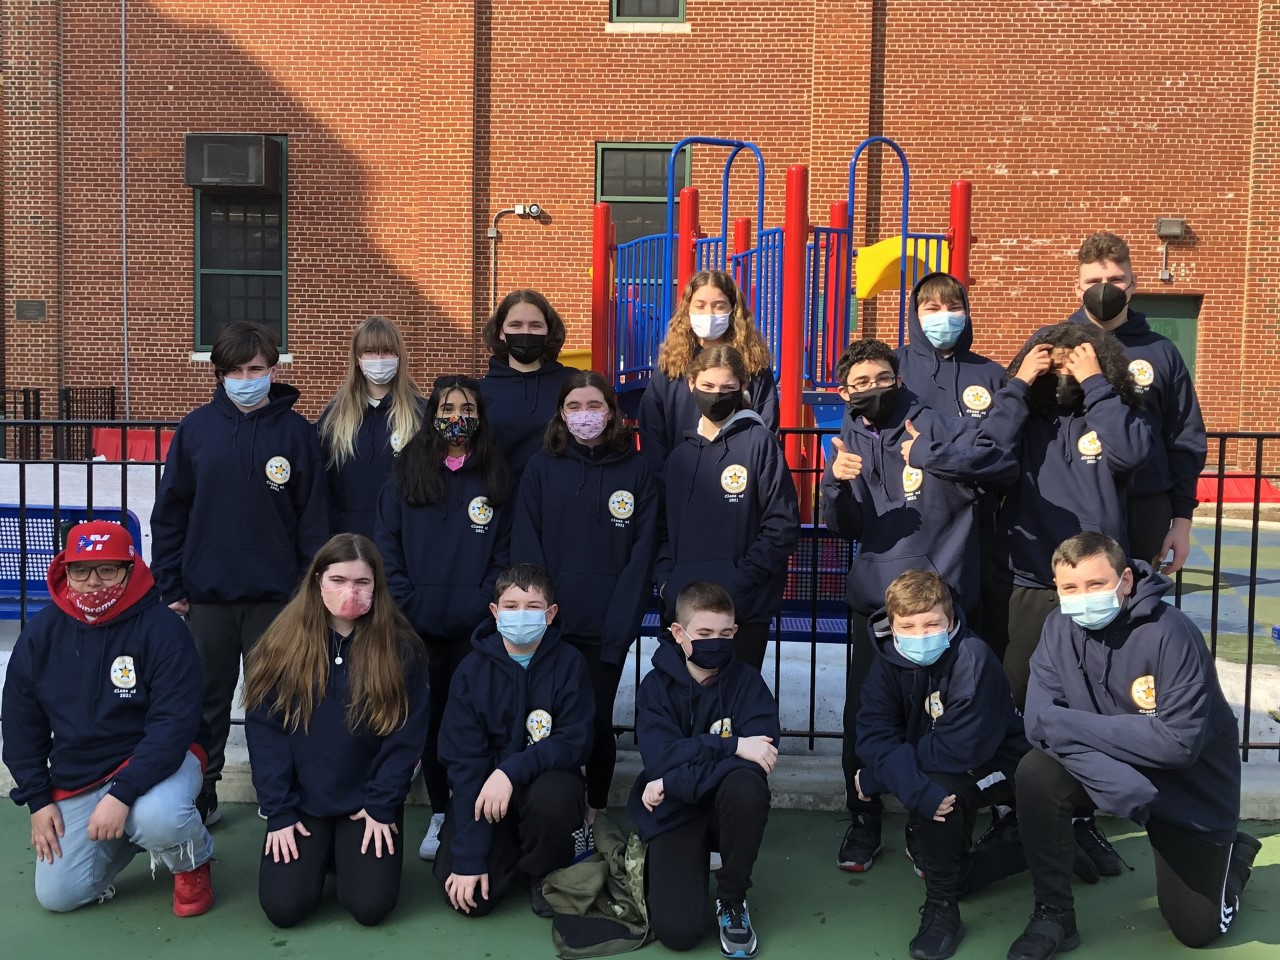 Students wear their school sweatshirts and face masks